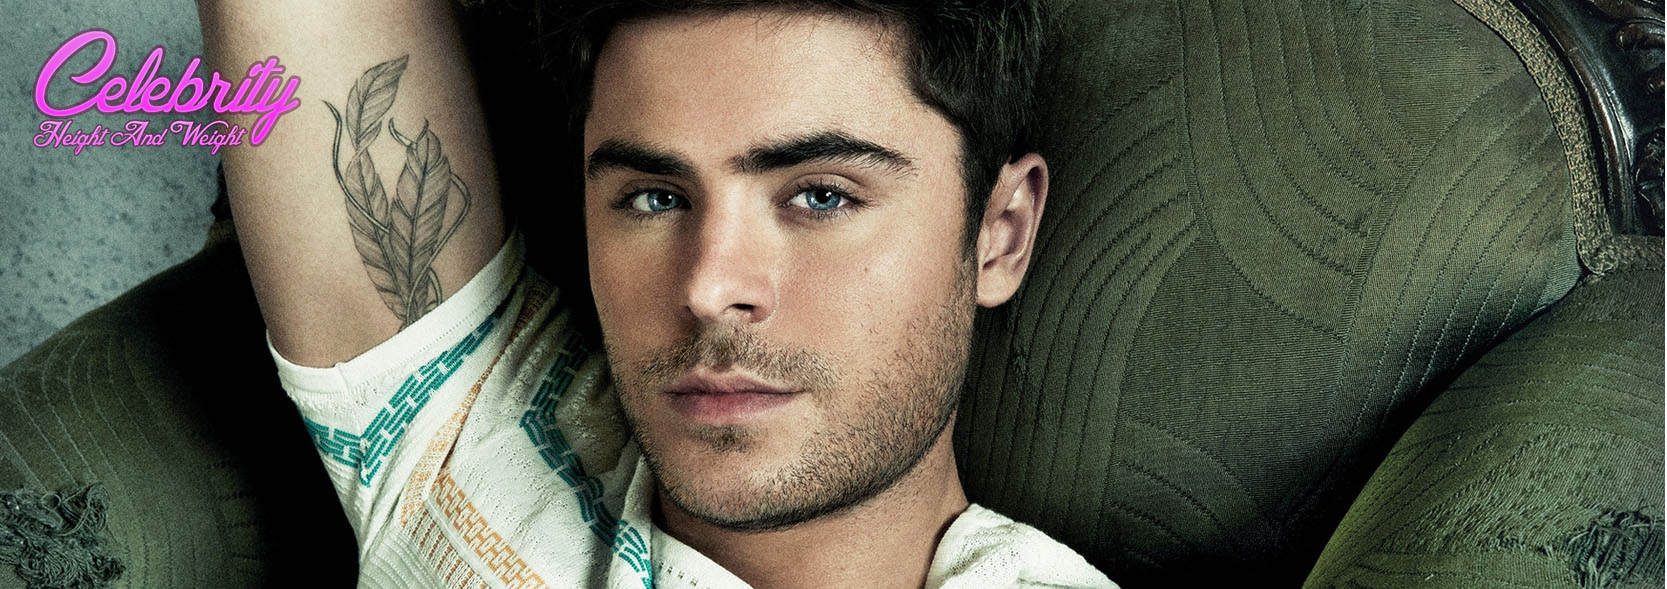 Zac Efron Height and Weight: Measurements